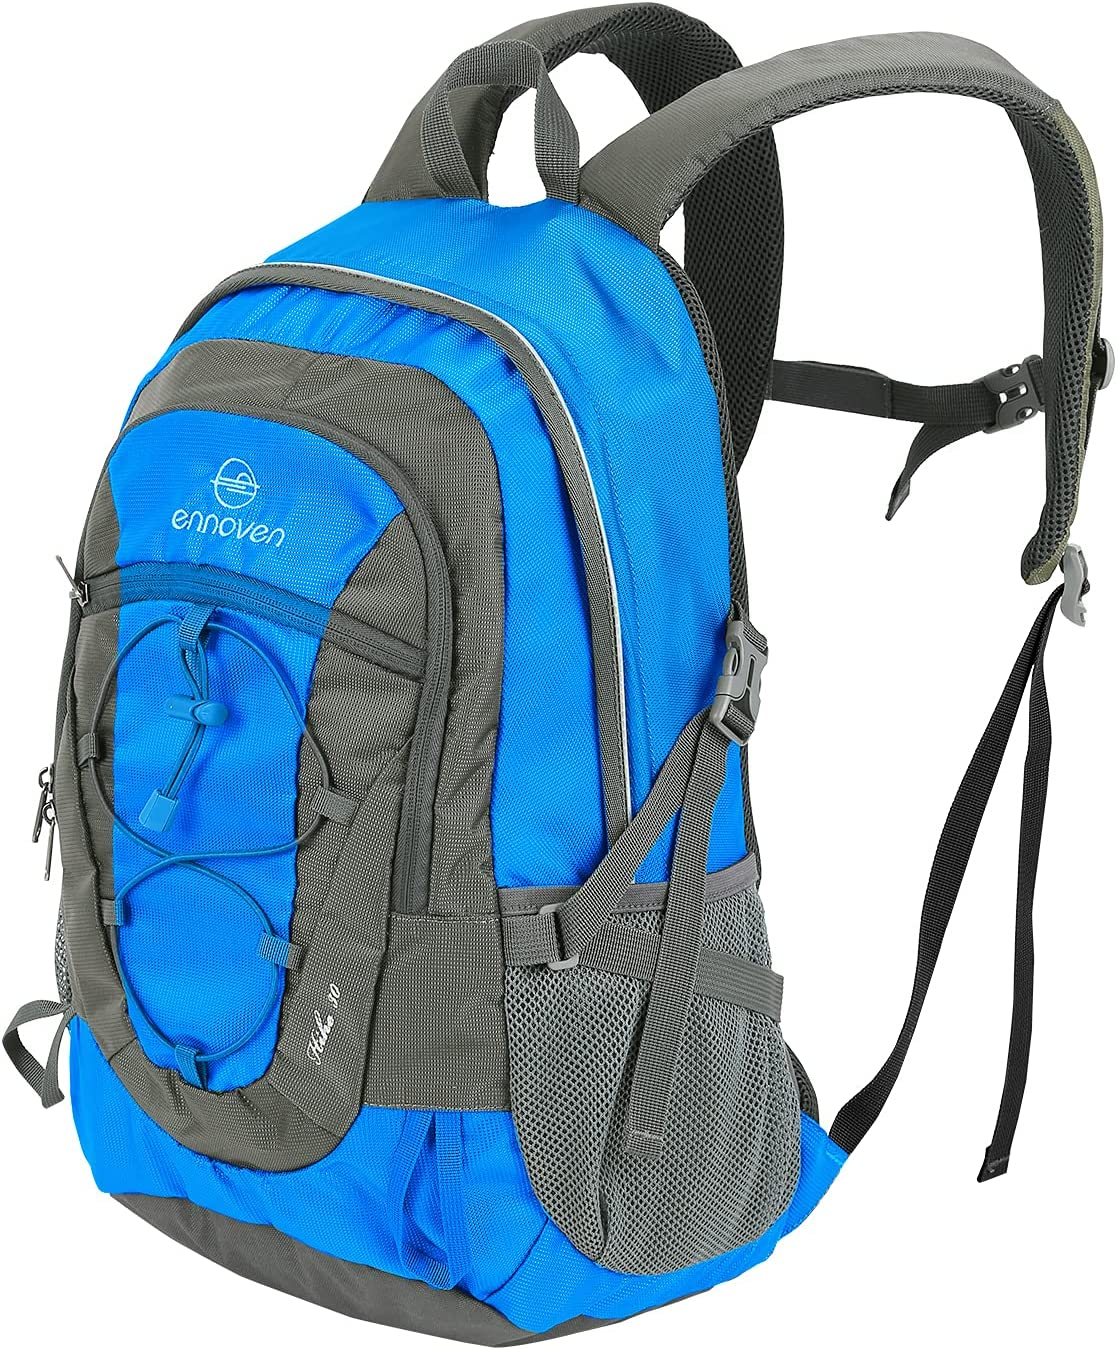 Ennoven Hiking Backpack-30L Wear-resist San Jose Mall Max 57% OFF Camping Backpack